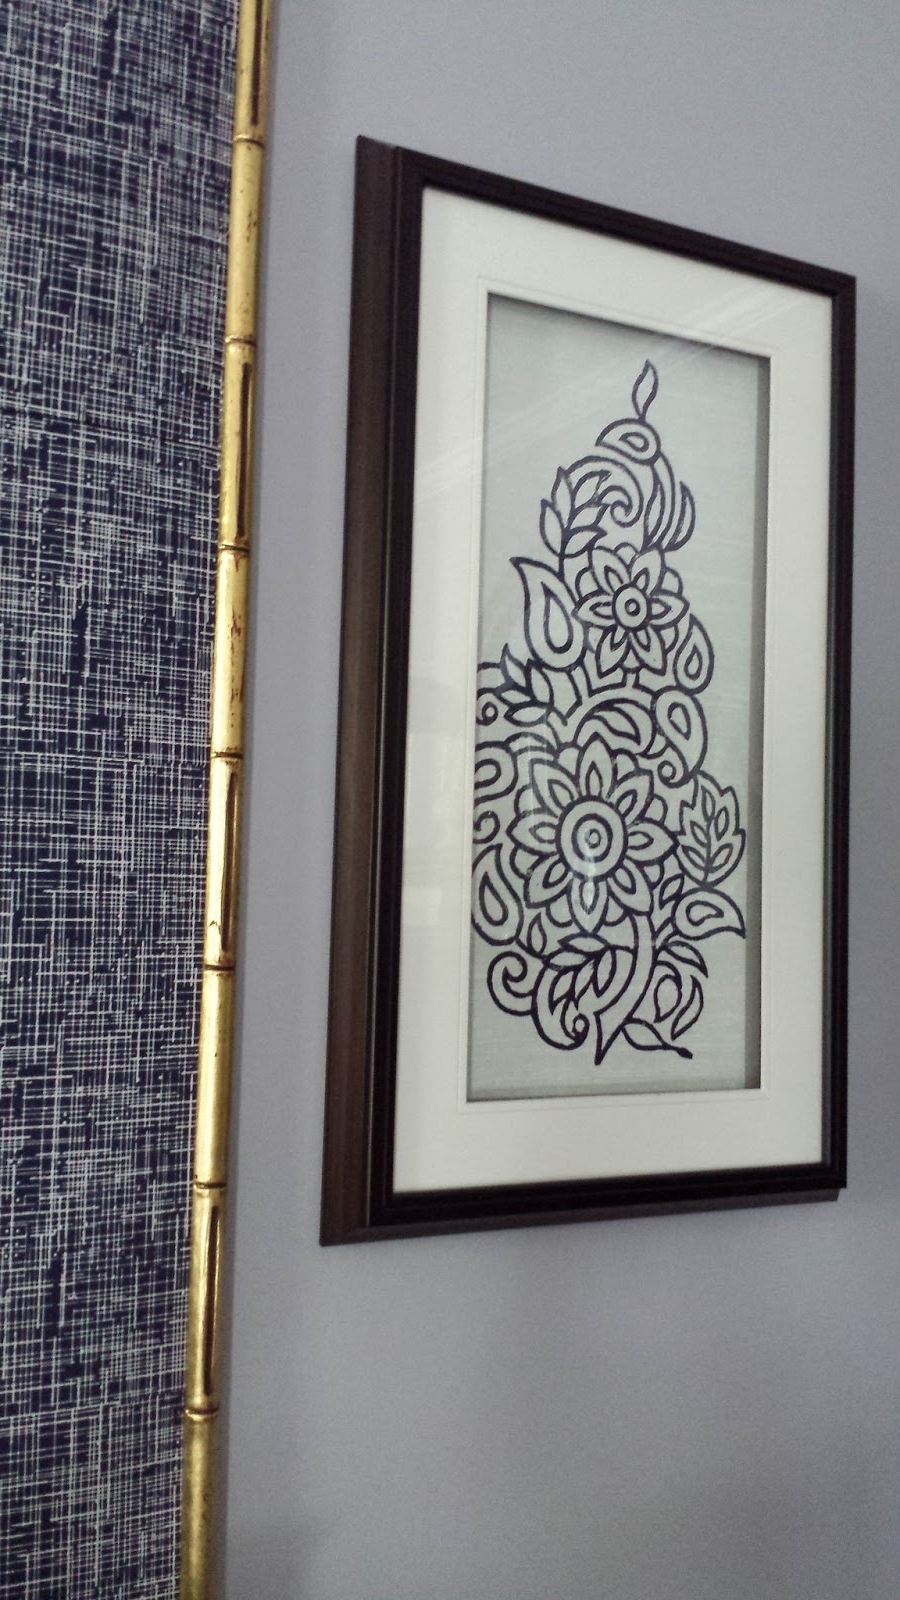 Focal Point Styling: Diy Indigo Wall Art With Framed Fabric With Regard To Well Known Fabric Wall Art (View 15 of 15)